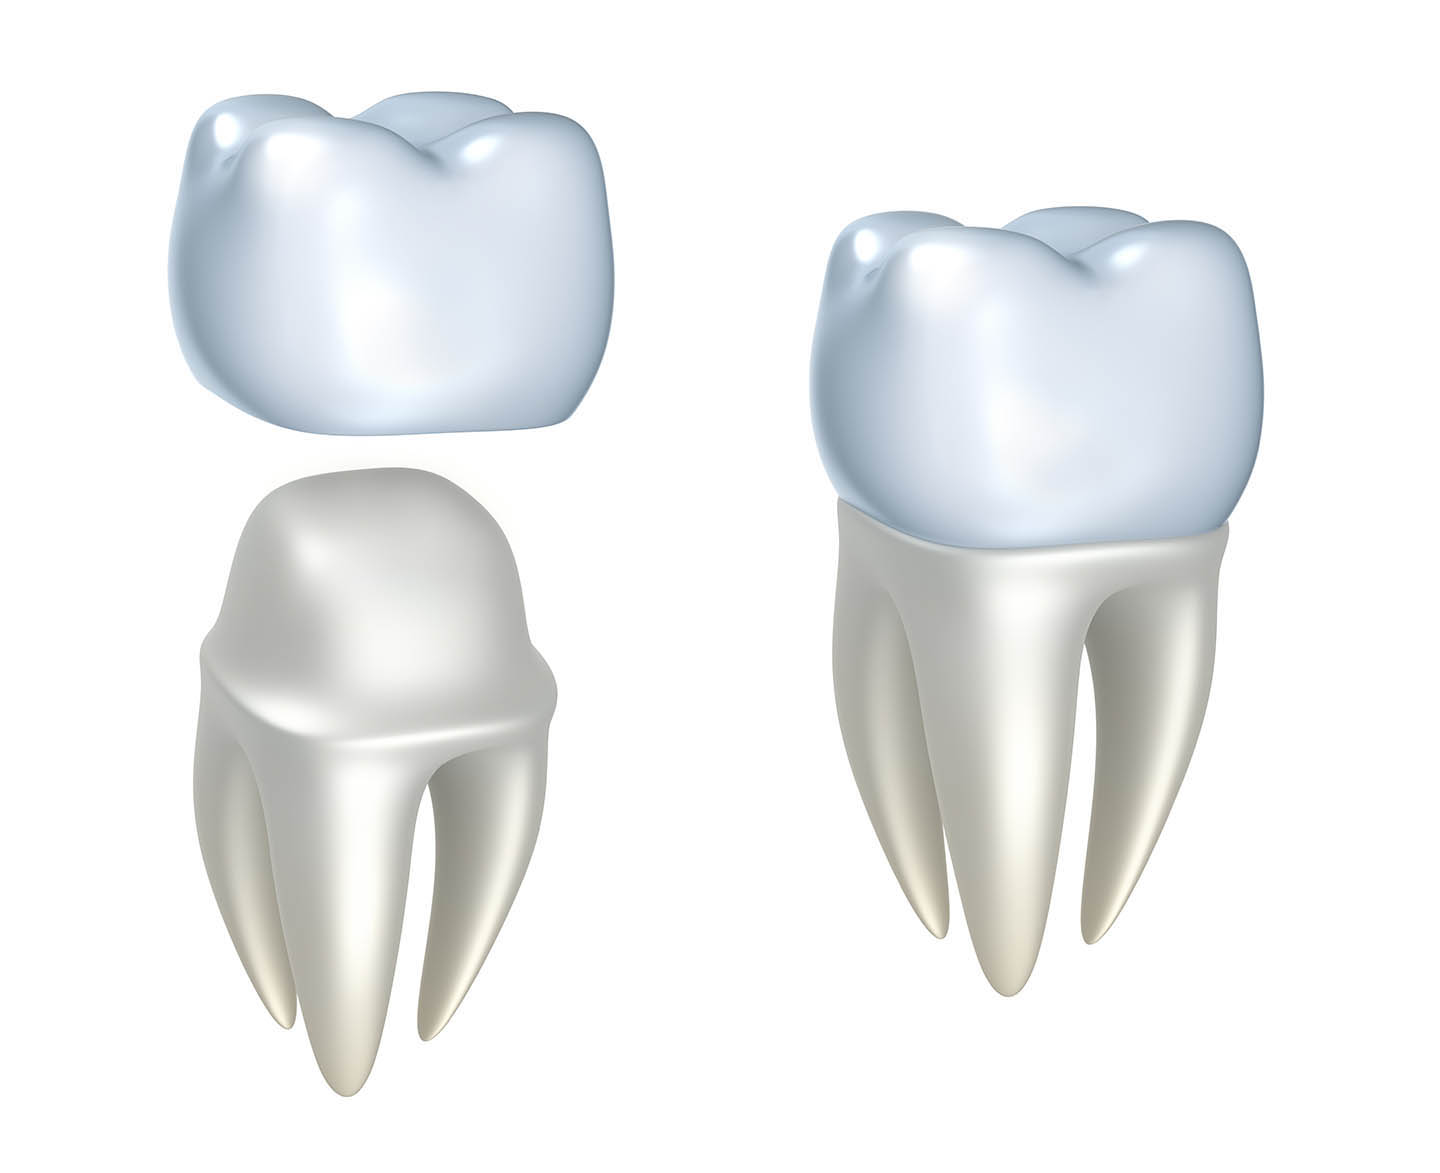 animated image of dental crown